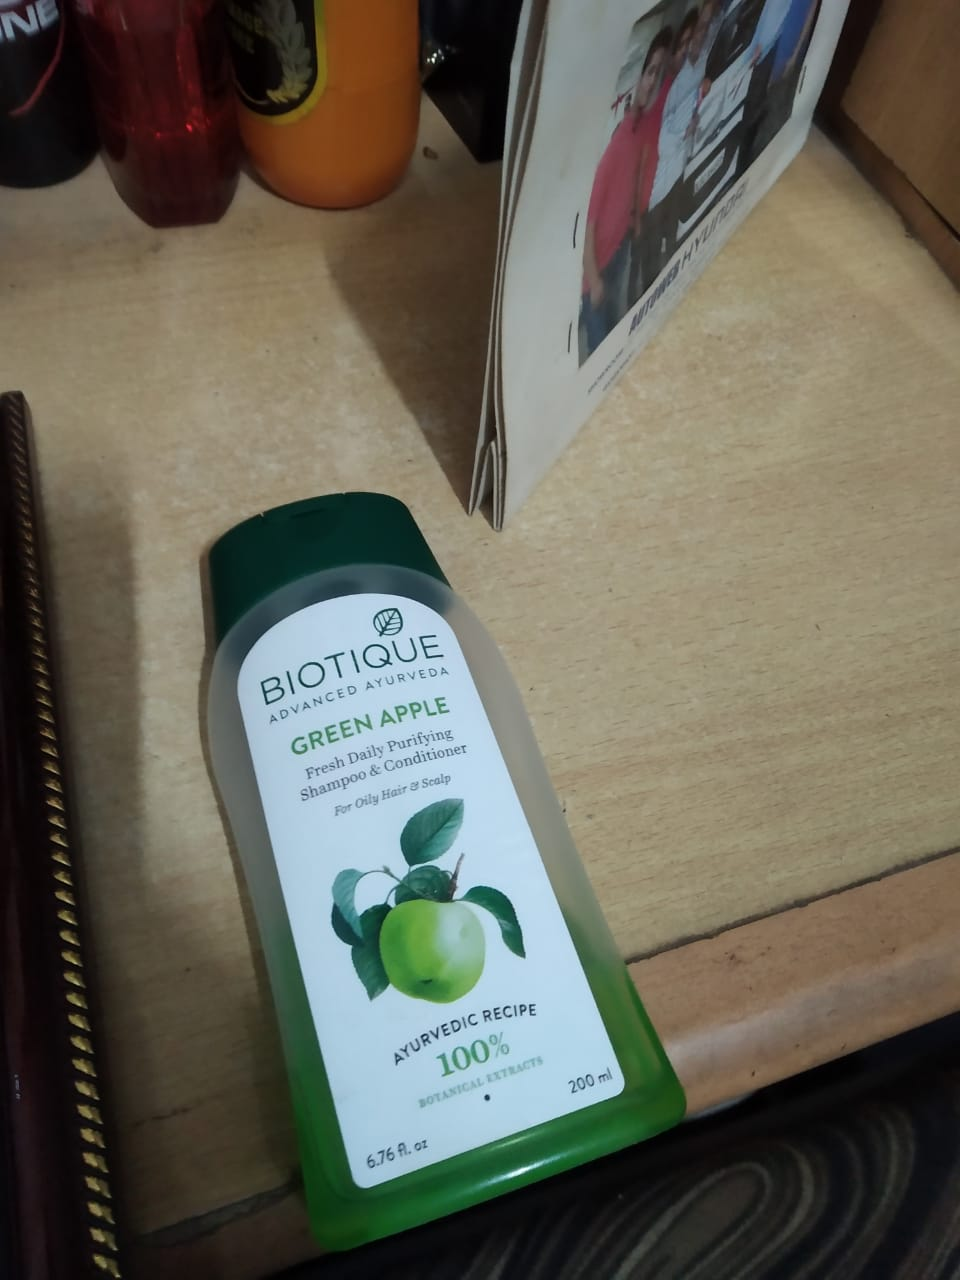 Biotique Bio Green Apple Fresh Daily Purifying Shampoo & Conditioner -Green apple shampoo-By garimabagga